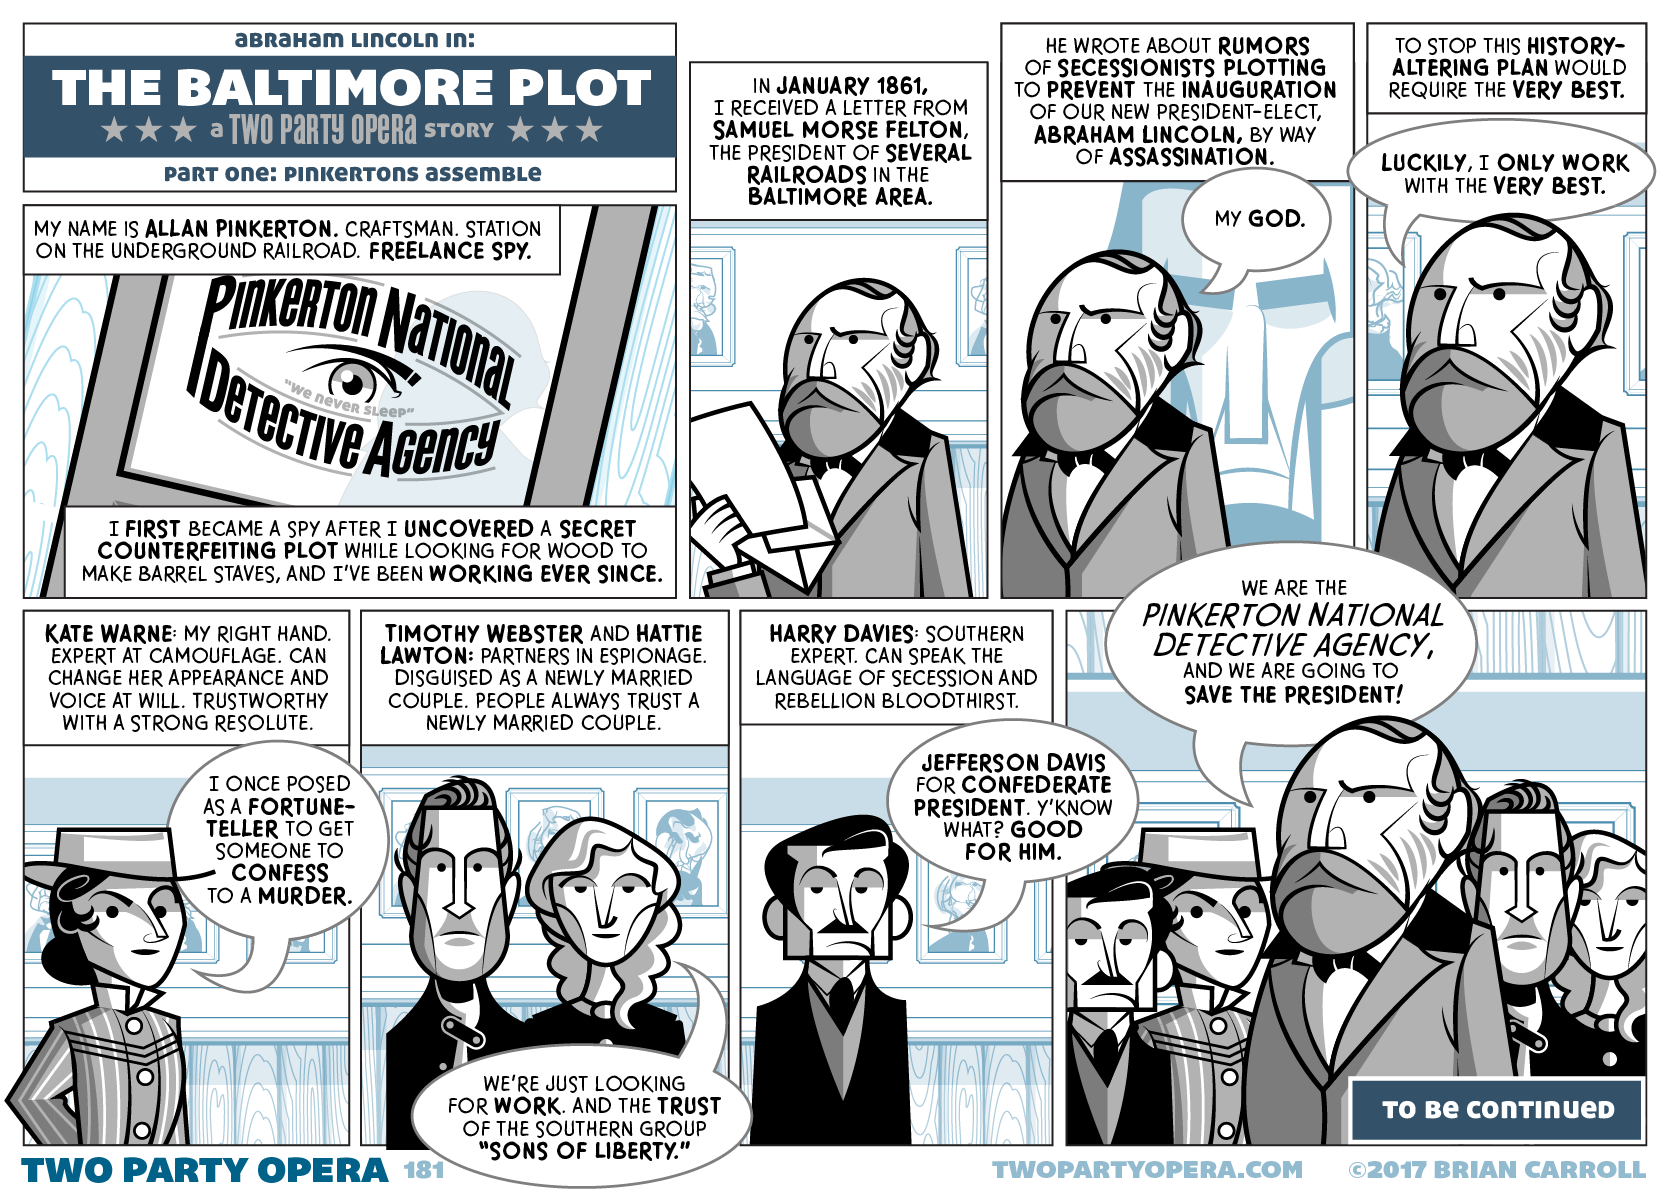 The Baltimore Plot – Part One: Pinkertons Assemble